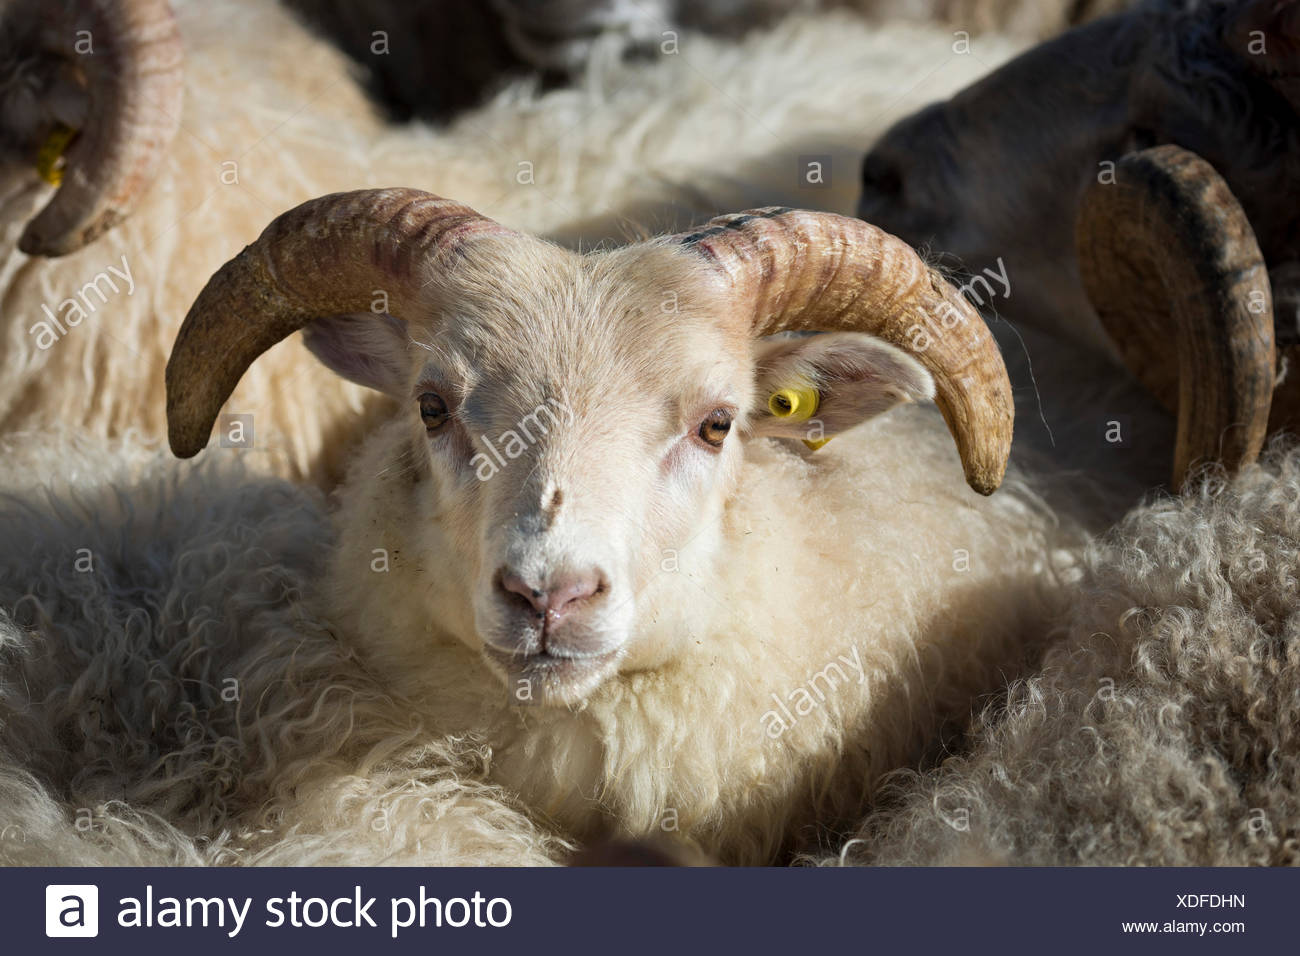 Sheep with ear tag, sheep transhumance, near Höfn, Iceland - Stock Image